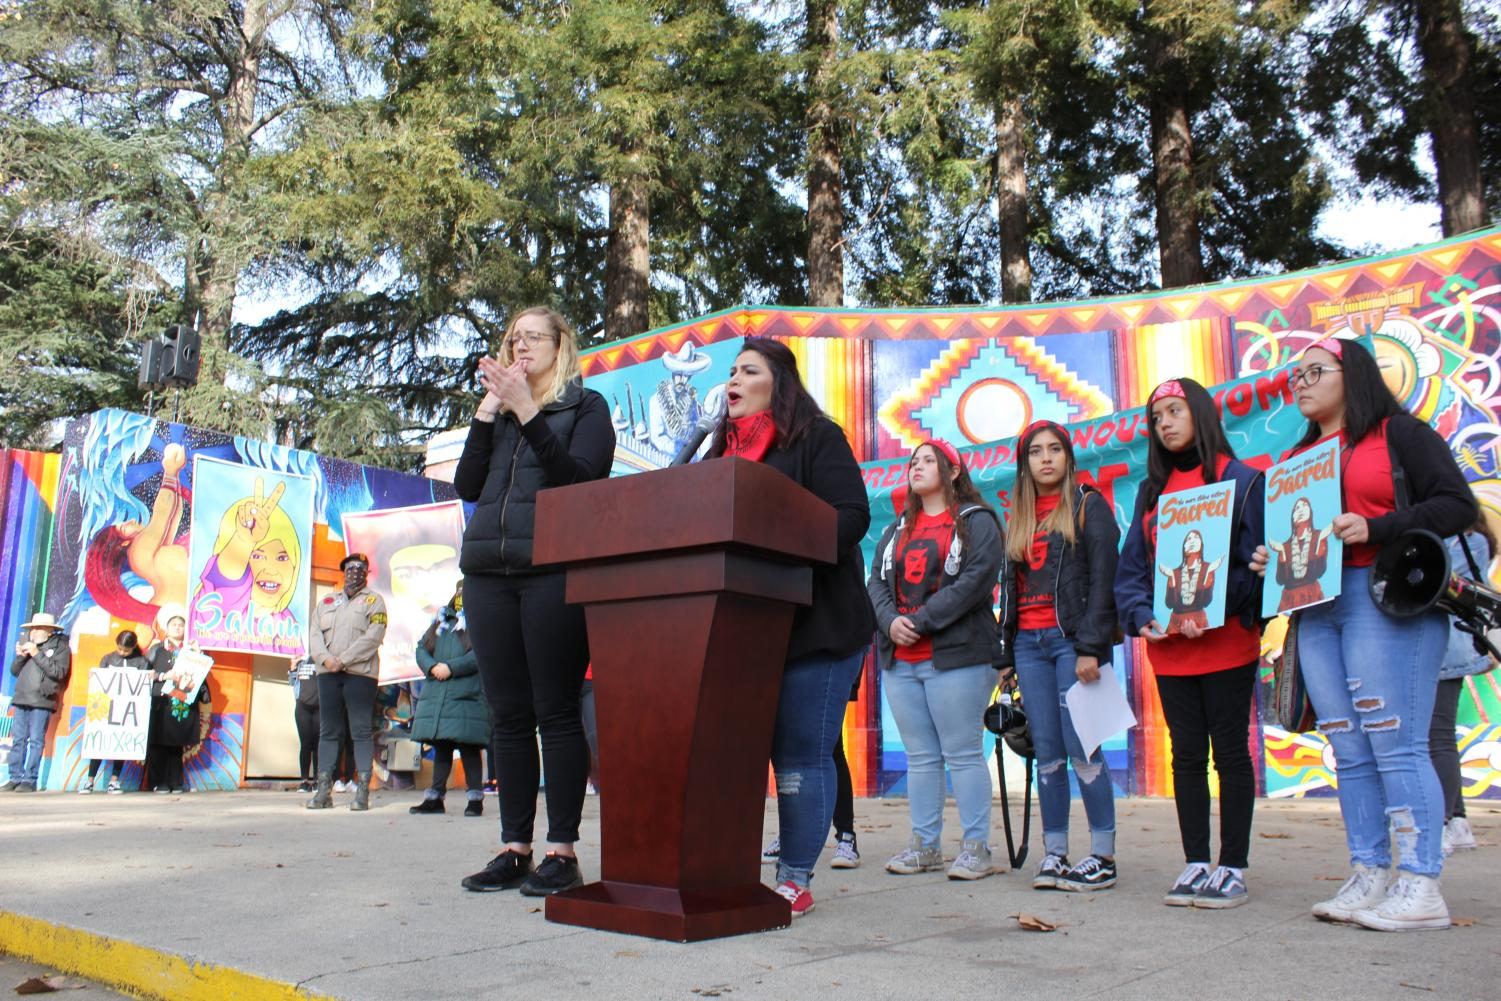 #VivaLaMujer advocate Ruth Ibarra speaks at Southside Park for organization NorCal Resist at the Sacramento Women's March on January 18, 2020. Thousands marched together in support of equal rights at the fourth annual iteration of this event.